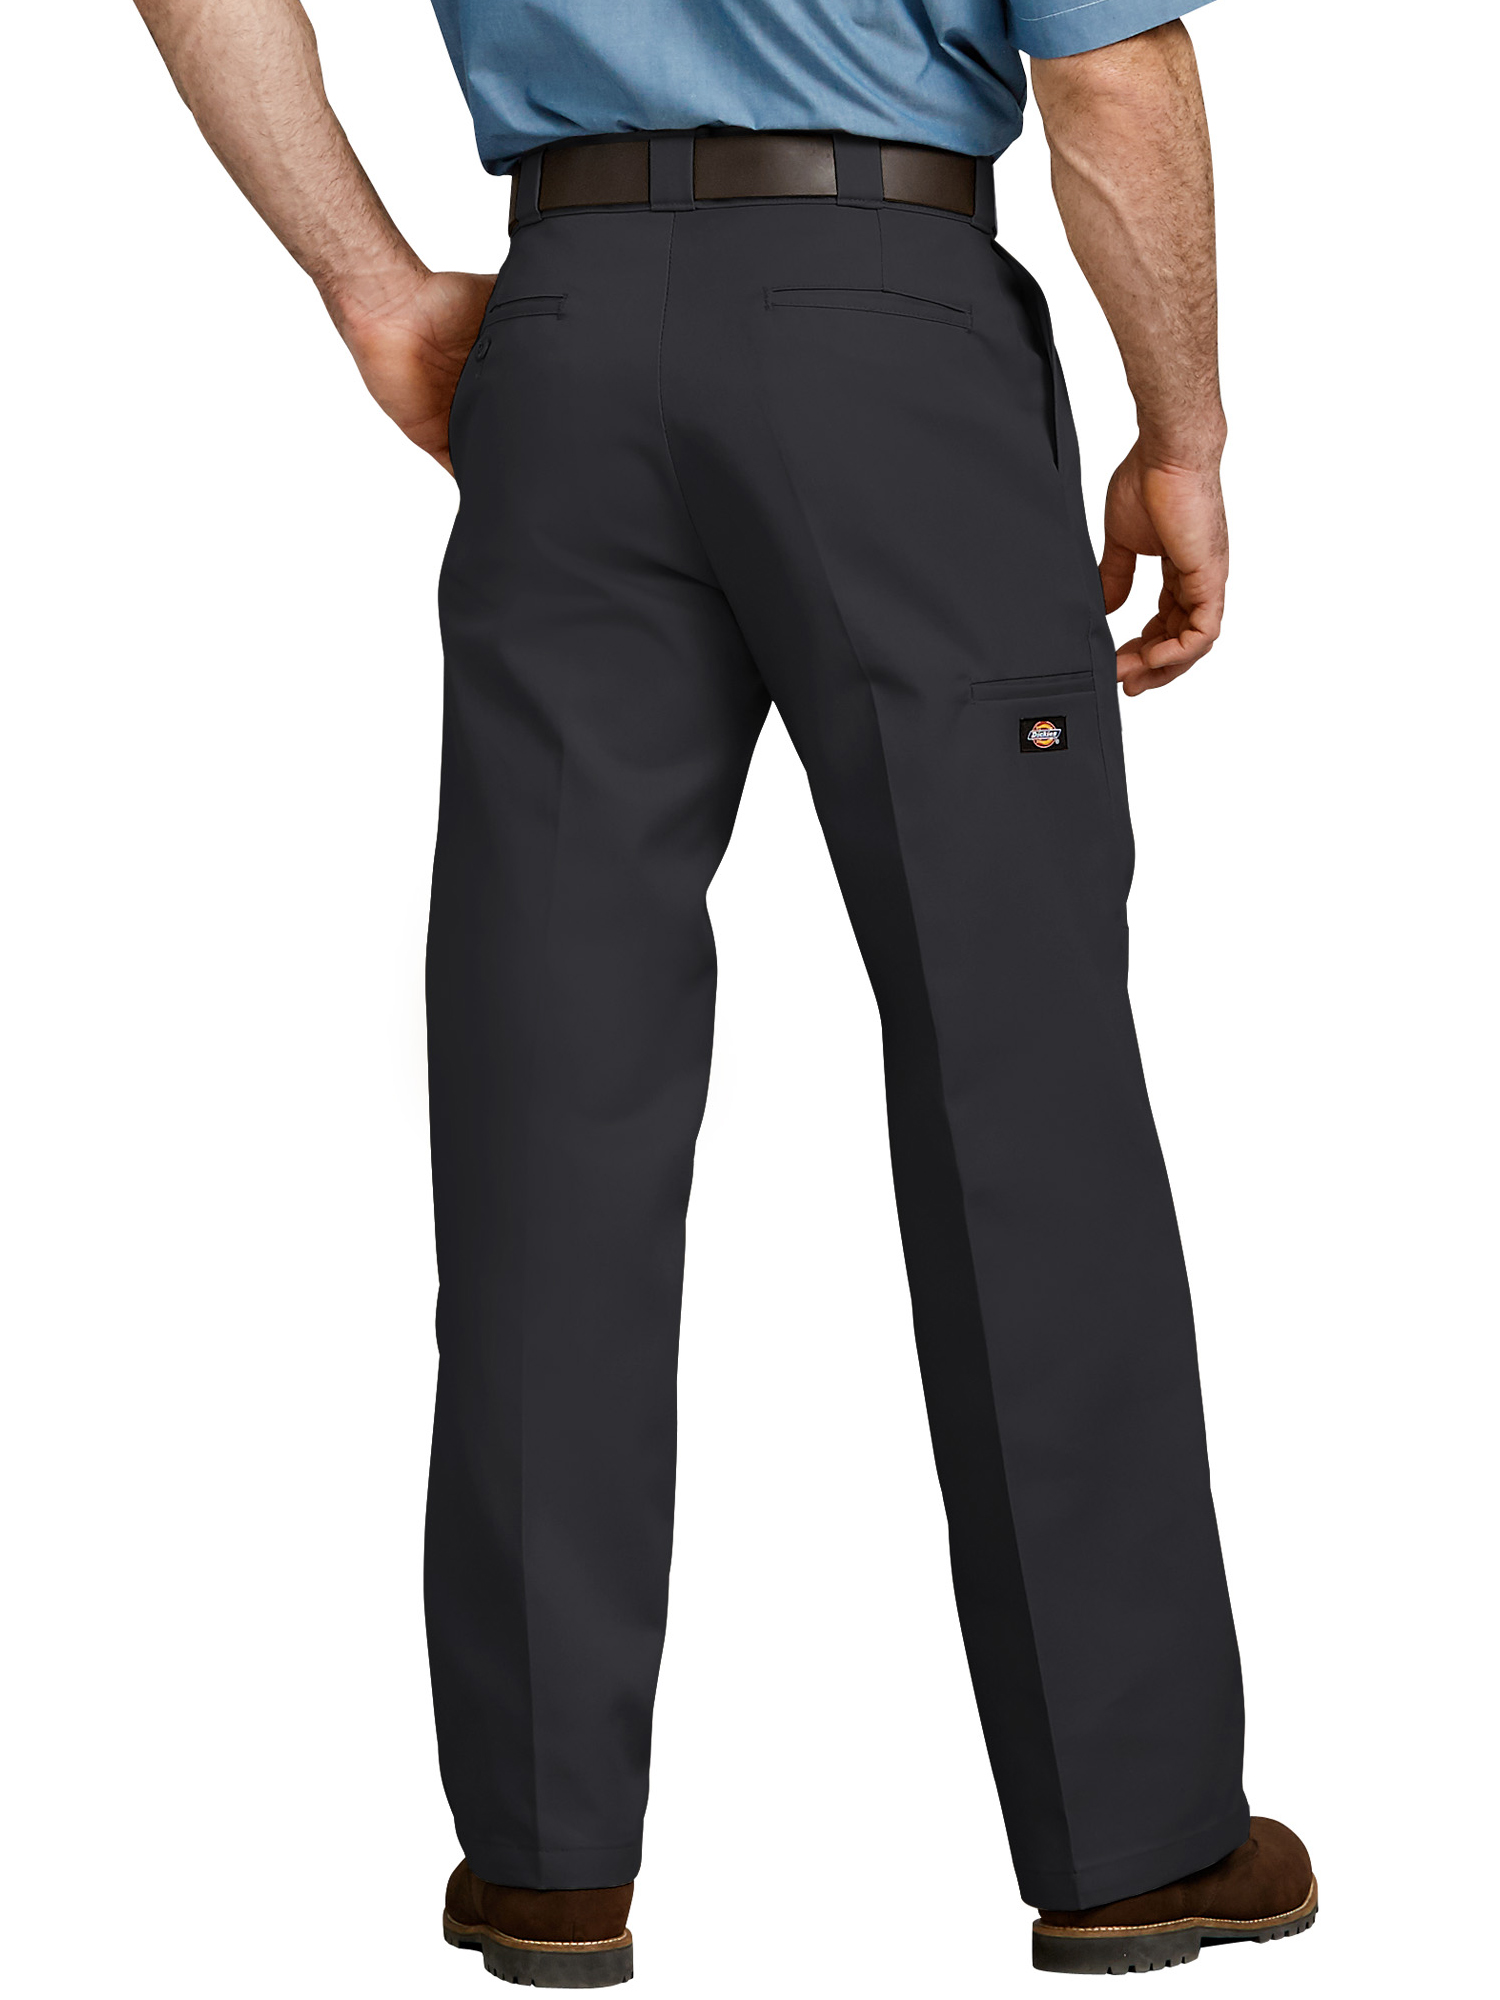 Dickies GDT TWIN PACK Premium Reinforced Trousers Black /& Grey Various Sizes